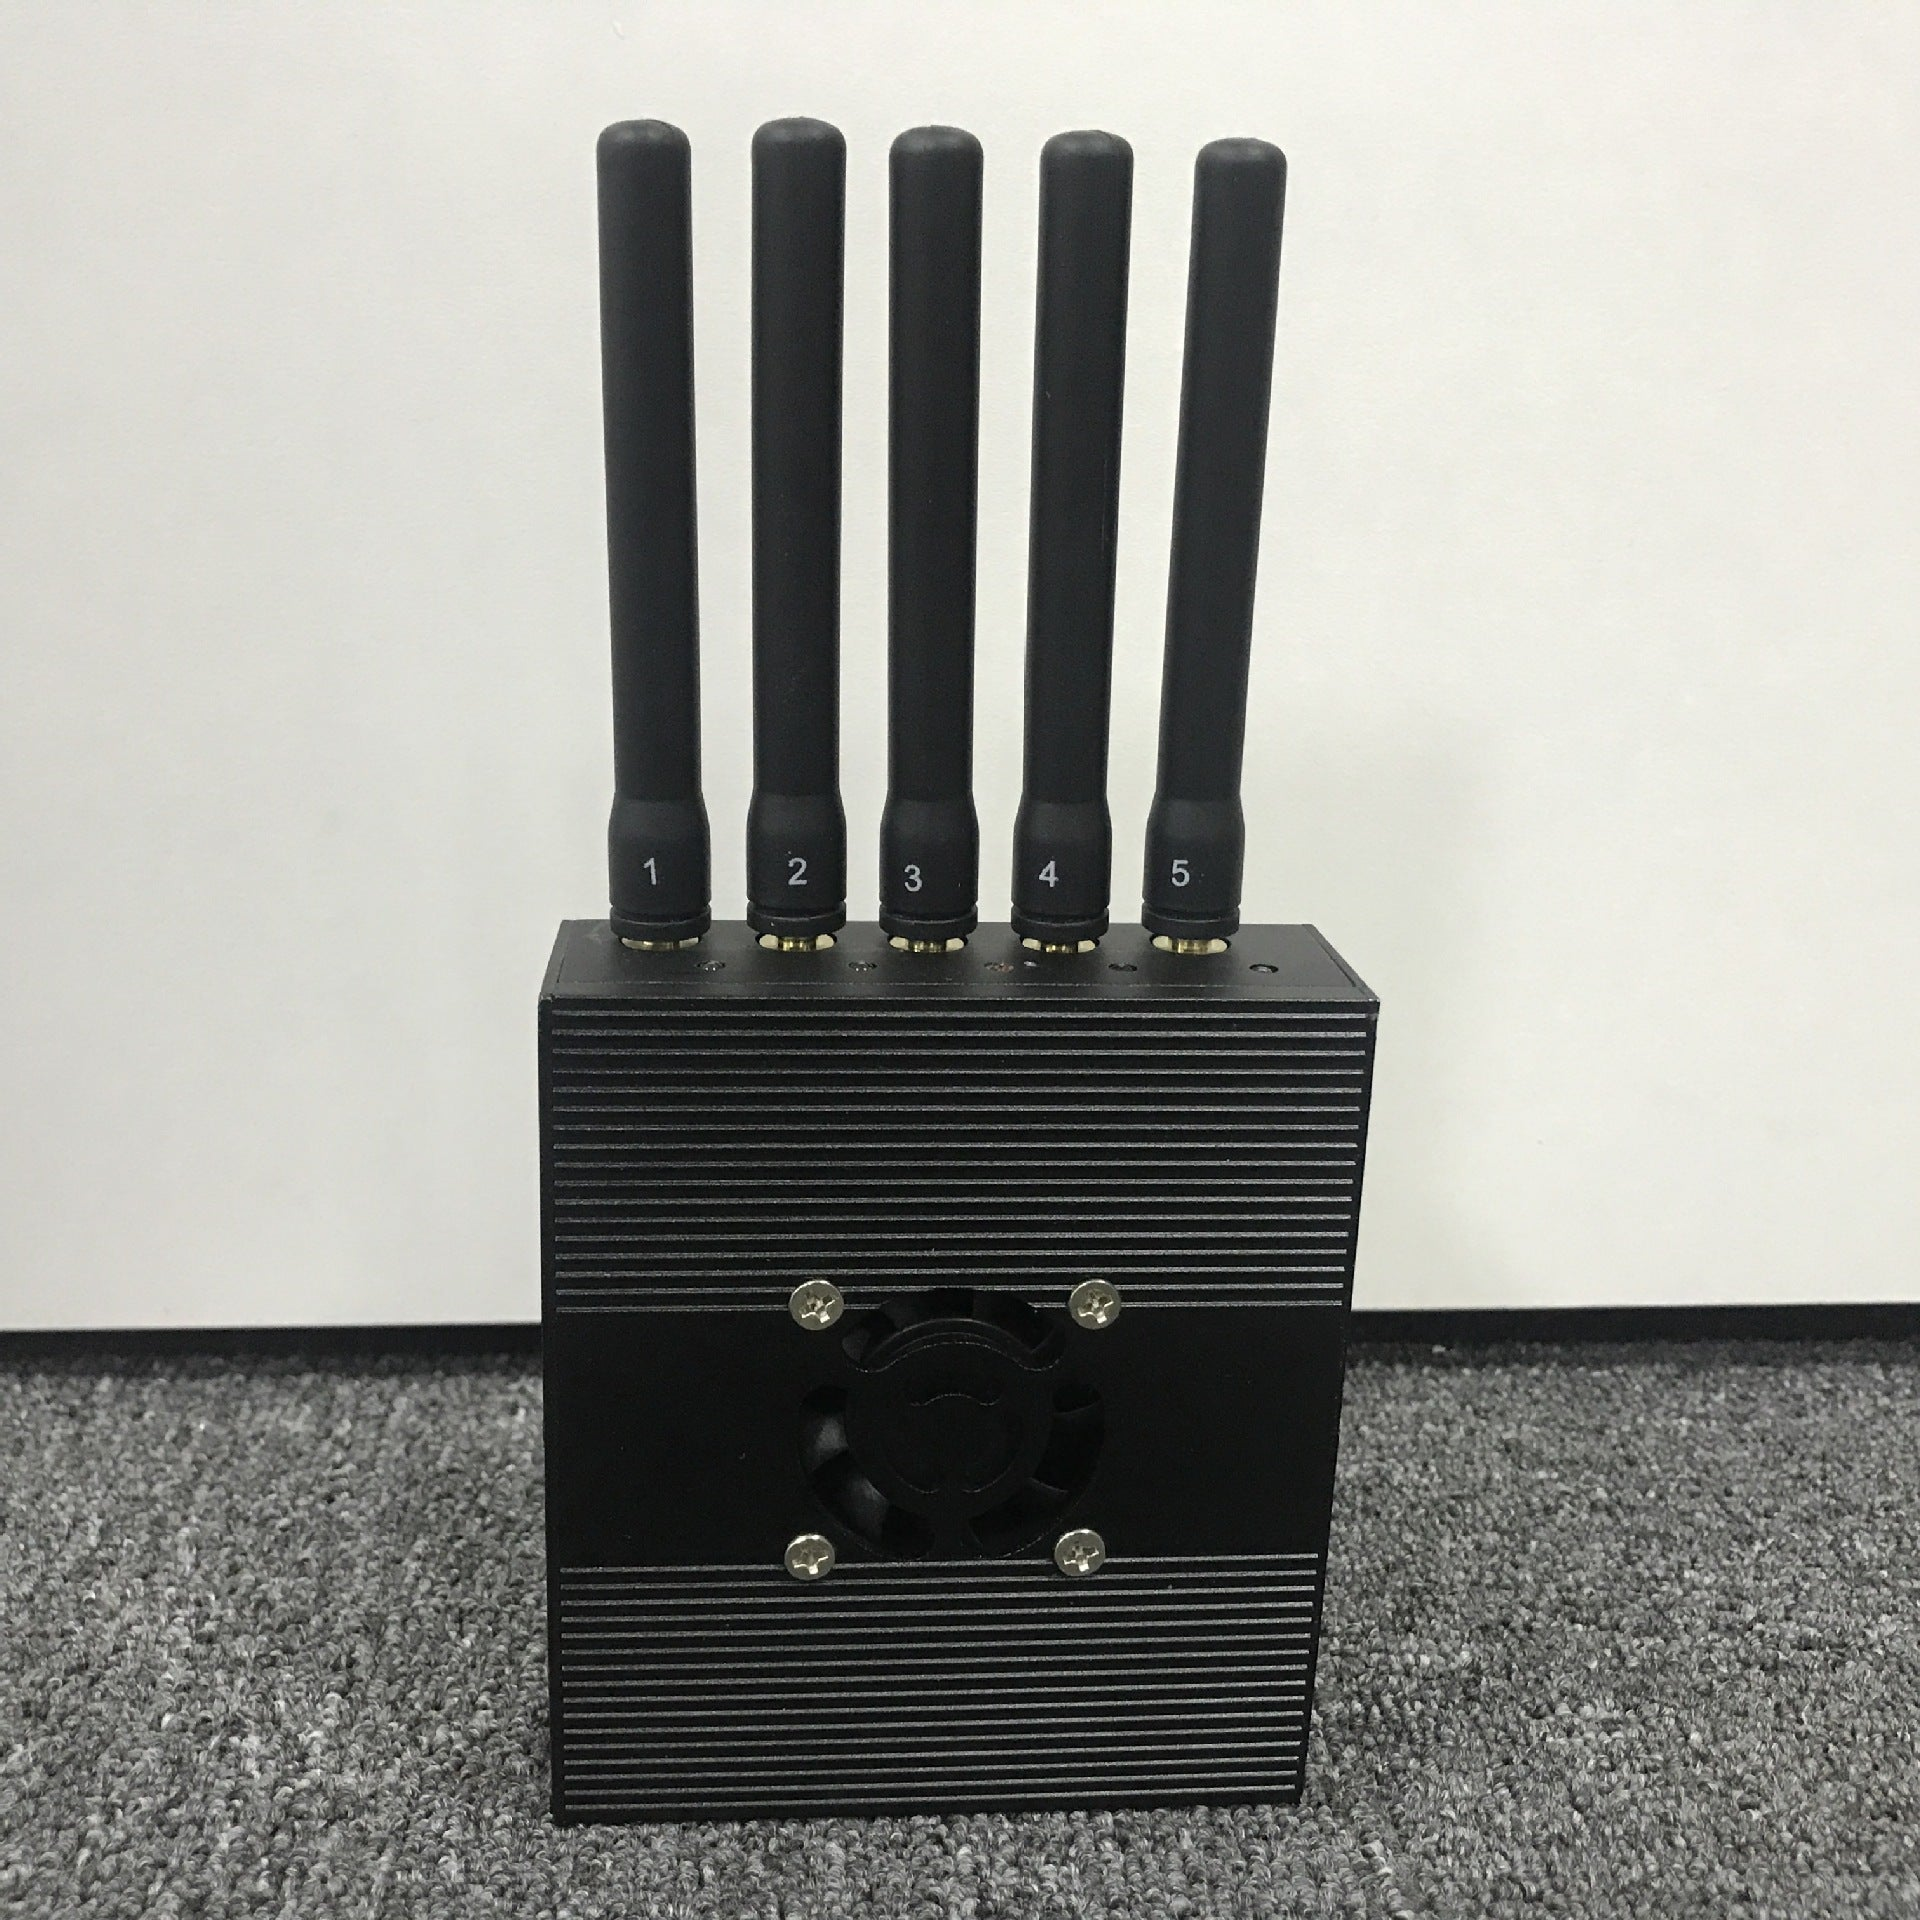 Anti-positioning shielding device anti-GPS, Beidou, base station signal positioning protection privacy